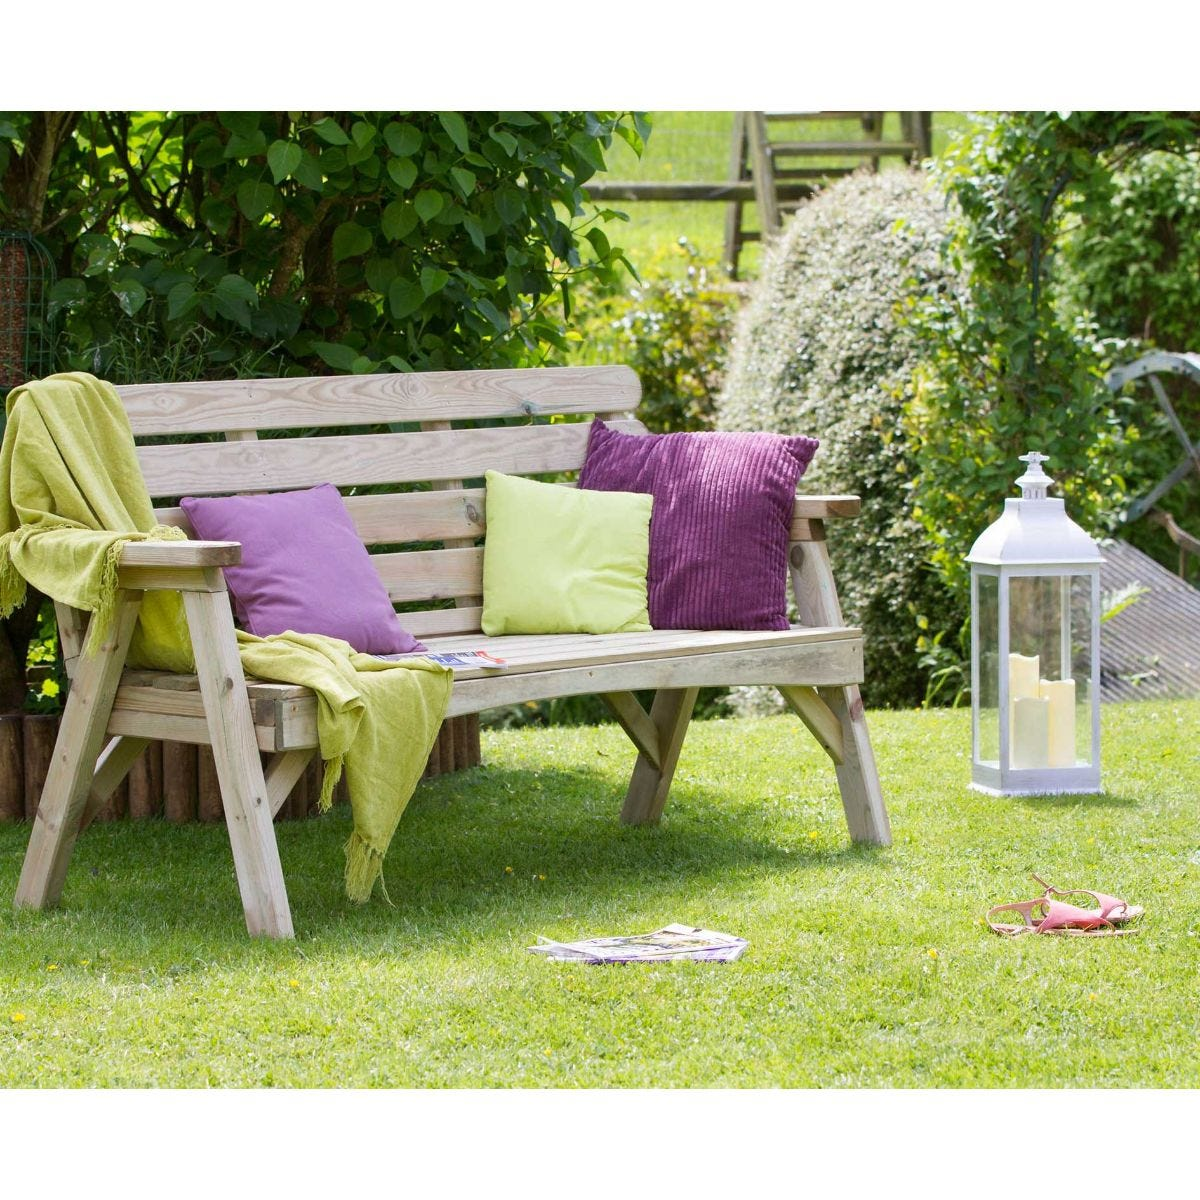 Abbey 3 Seater Garden Bench